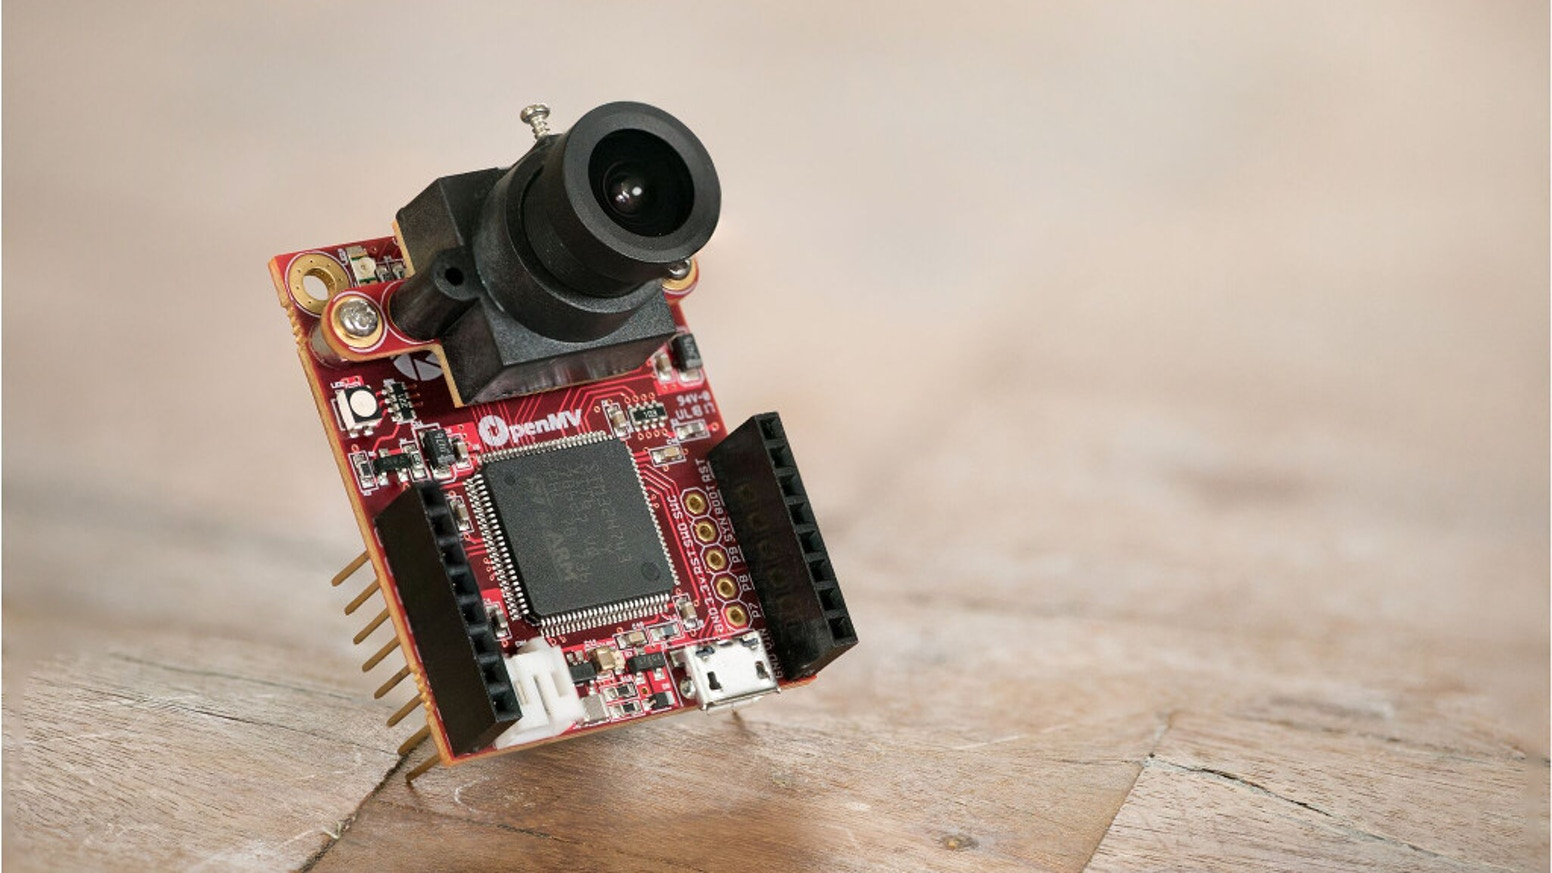 Openmv Cam H7 Machine Vision W Micropython By Kickstarter N5ese Teensey Noise Generator Schematic The Is An Open Source Powered Camera Designed For